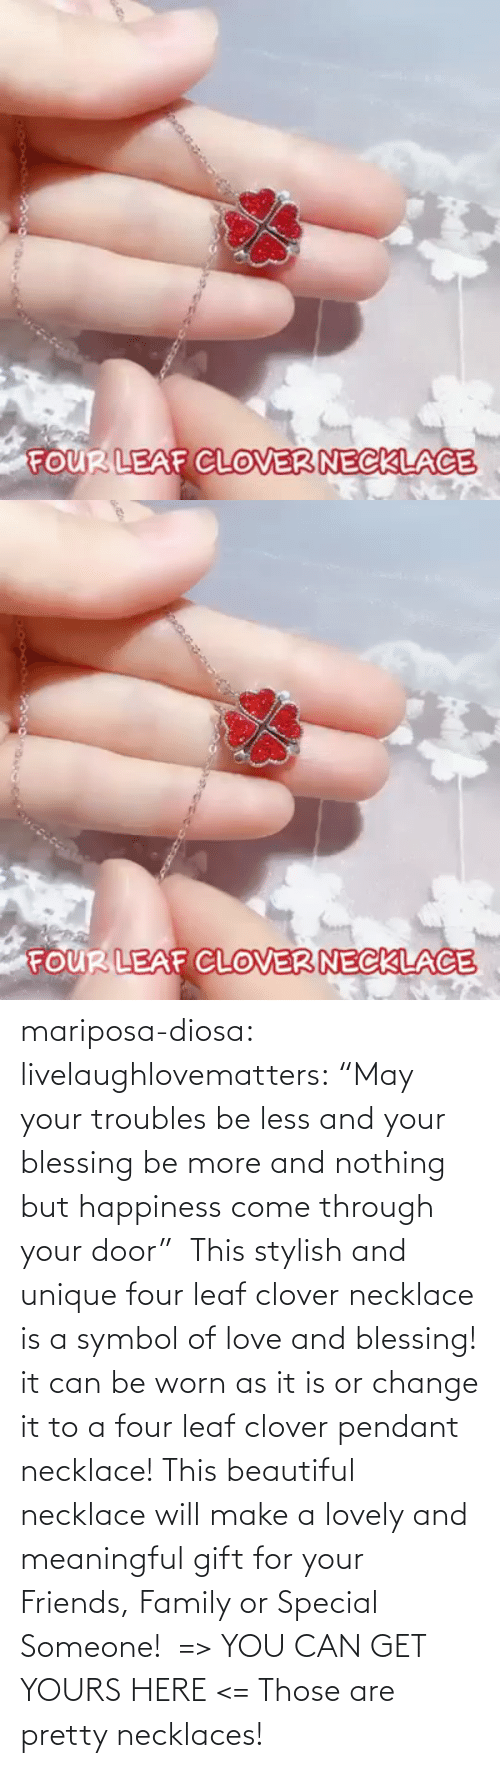 "door: mariposa-diosa: livelaughlovematters:  ""May your troubles be less and your blessing be more and nothing but happiness come through your door""  This stylish and unique four leaf clover necklace is a symbol of love and blessing! it can be worn as it is or change it to a four leaf clover pendant necklace! This beautiful necklace will make a lovely and meaningful gift for your Friends, Family or Special Someone!  => YOU CAN GET YOURS HERE <=    Those are pretty necklaces!"